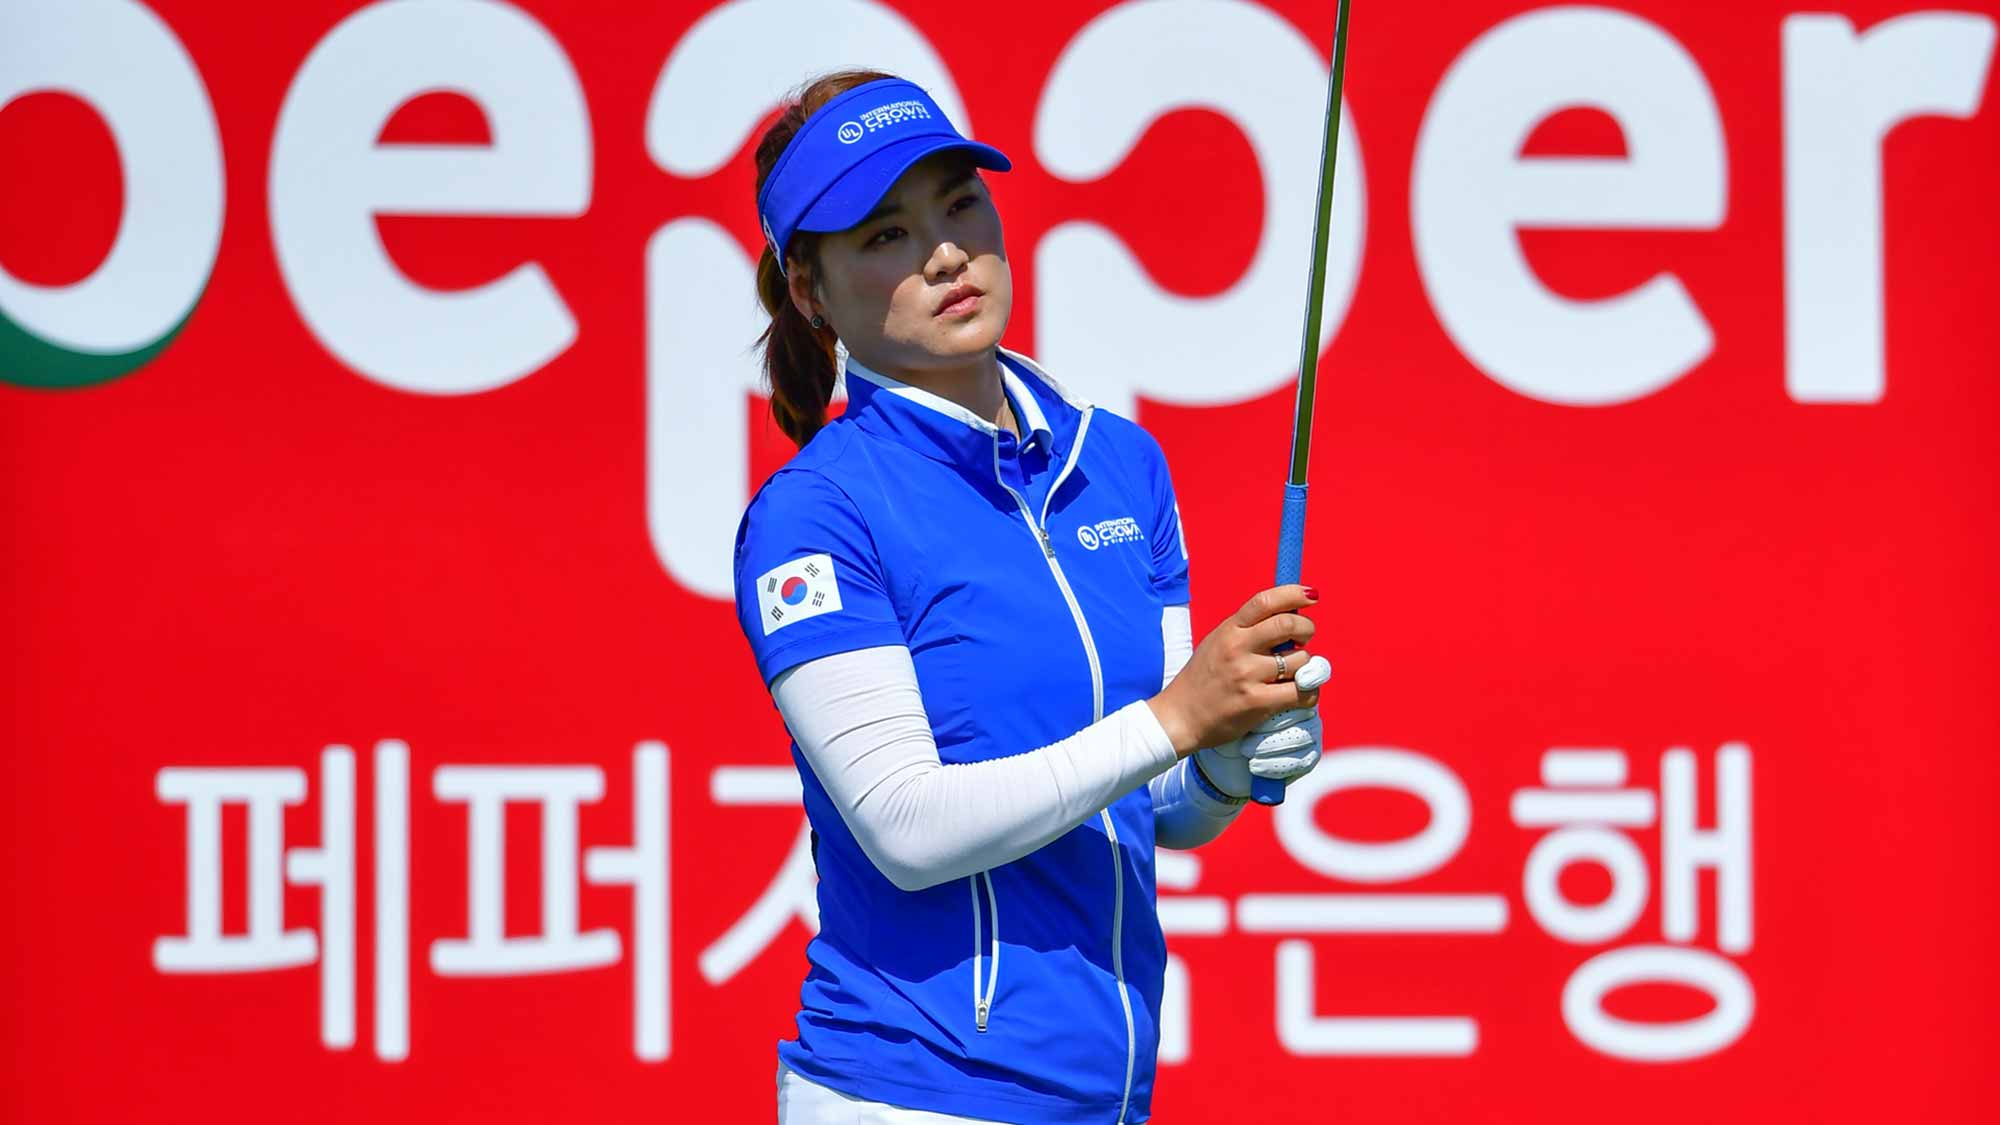 So Yeon Ryu on the tee during a practice round at the UL International Crown at Jack Nicklaus Golf Club Korea